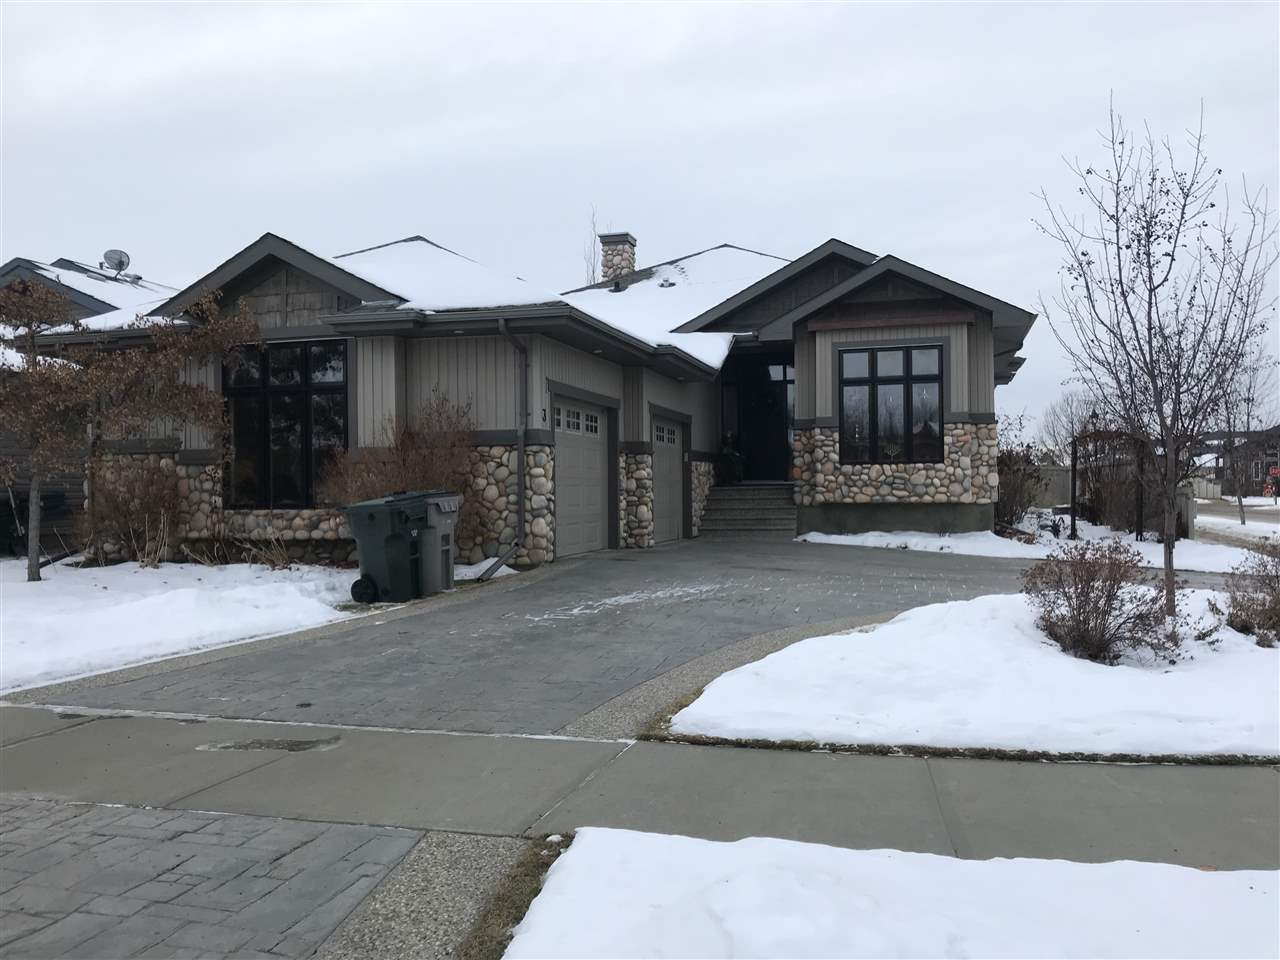 Beautiful, Custom built bungalow displaying attention to detail in the desireable location of Willow Park, Stony Plain, close to walking trails has stunning curb appeal including exposed aggregate, stamped concrete, copper and river rock detail and oversized, heated 27x22 garage. Over 3000sqft of living space encompasses the finer details and quality craftsmanship including transoms above doorways on the main, grand pillar detail, wainscotting, crown moulding and custom cabinetry from the library to the laundry room to the wine cellar. The great room boasts 12ft ceilings, custom fireplace & mantel and adjoins the colossal dining room and kitchen with pillar detail creating a sense of separation. Kitchen displays granite, S/S appliances, farm style sink, and walk through pantry to the laundry room. Master retreat has garden door opening to a covered deck and ensuite that boasts dual sinks, steam shower, jacuzzi and w/i closet. Basement has 2 large bdrms, great room, wet bar, wine cellar, and infloor heat.